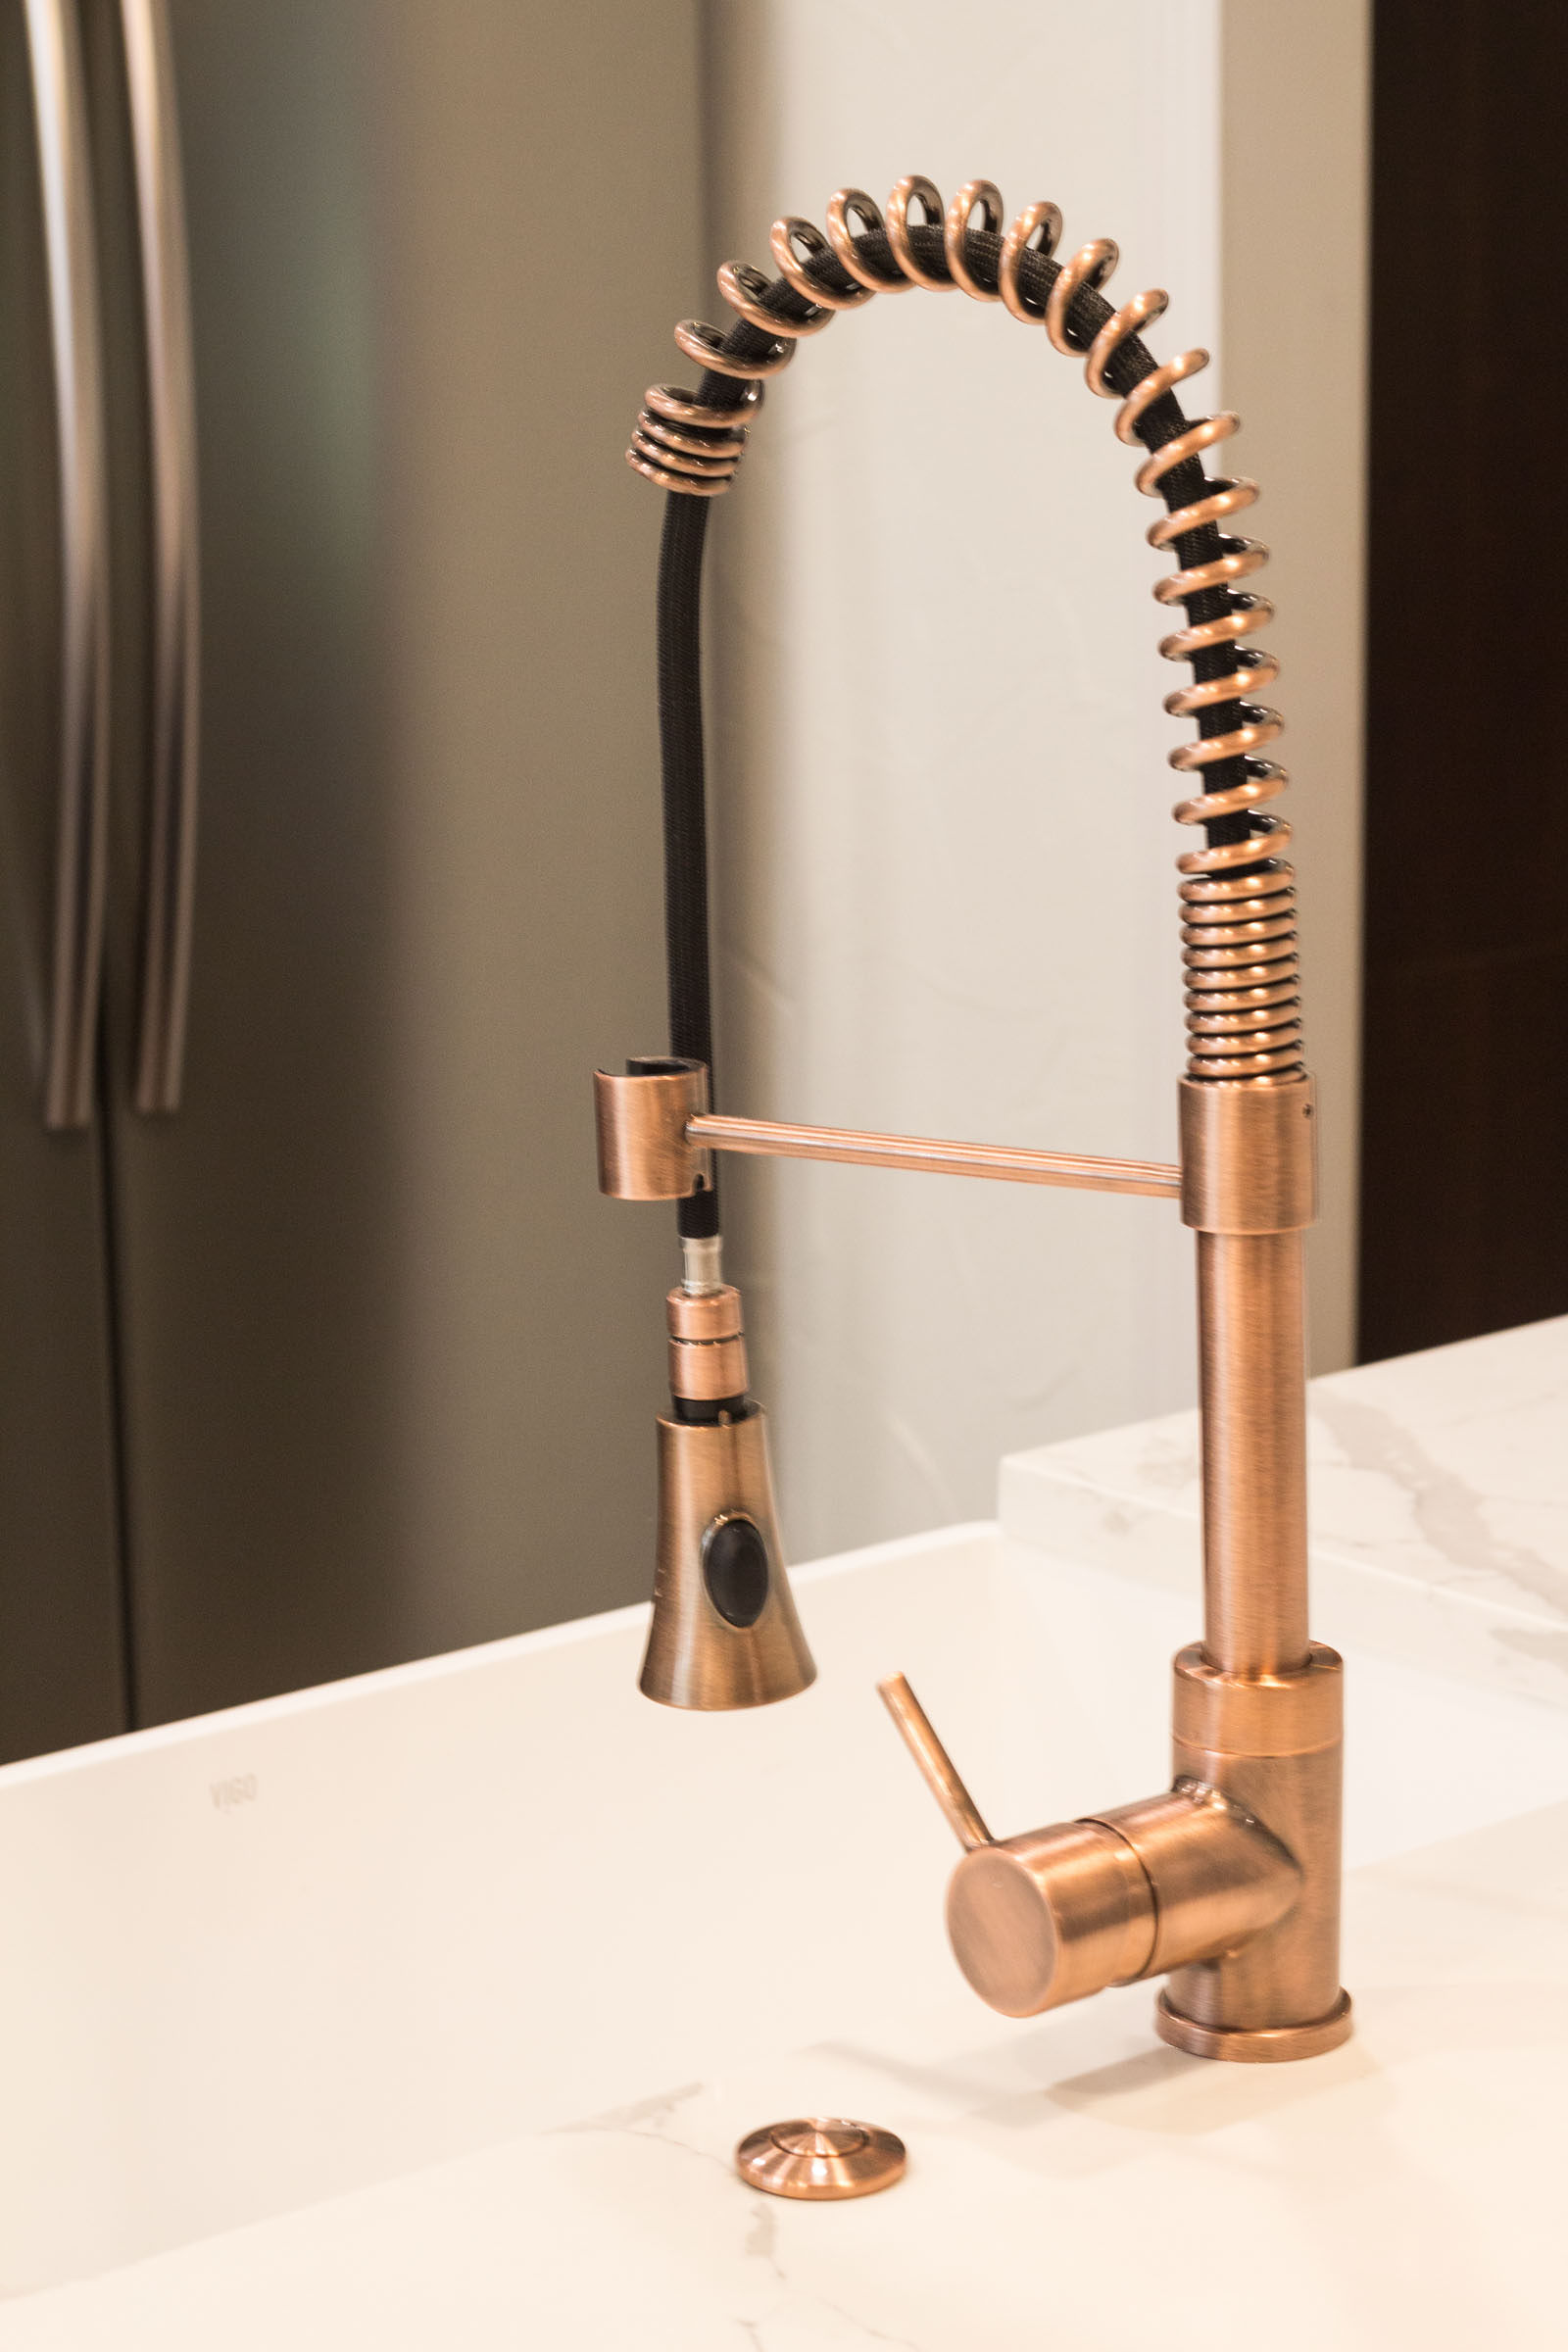 Copper swan neck sink faucet with built in disposal button